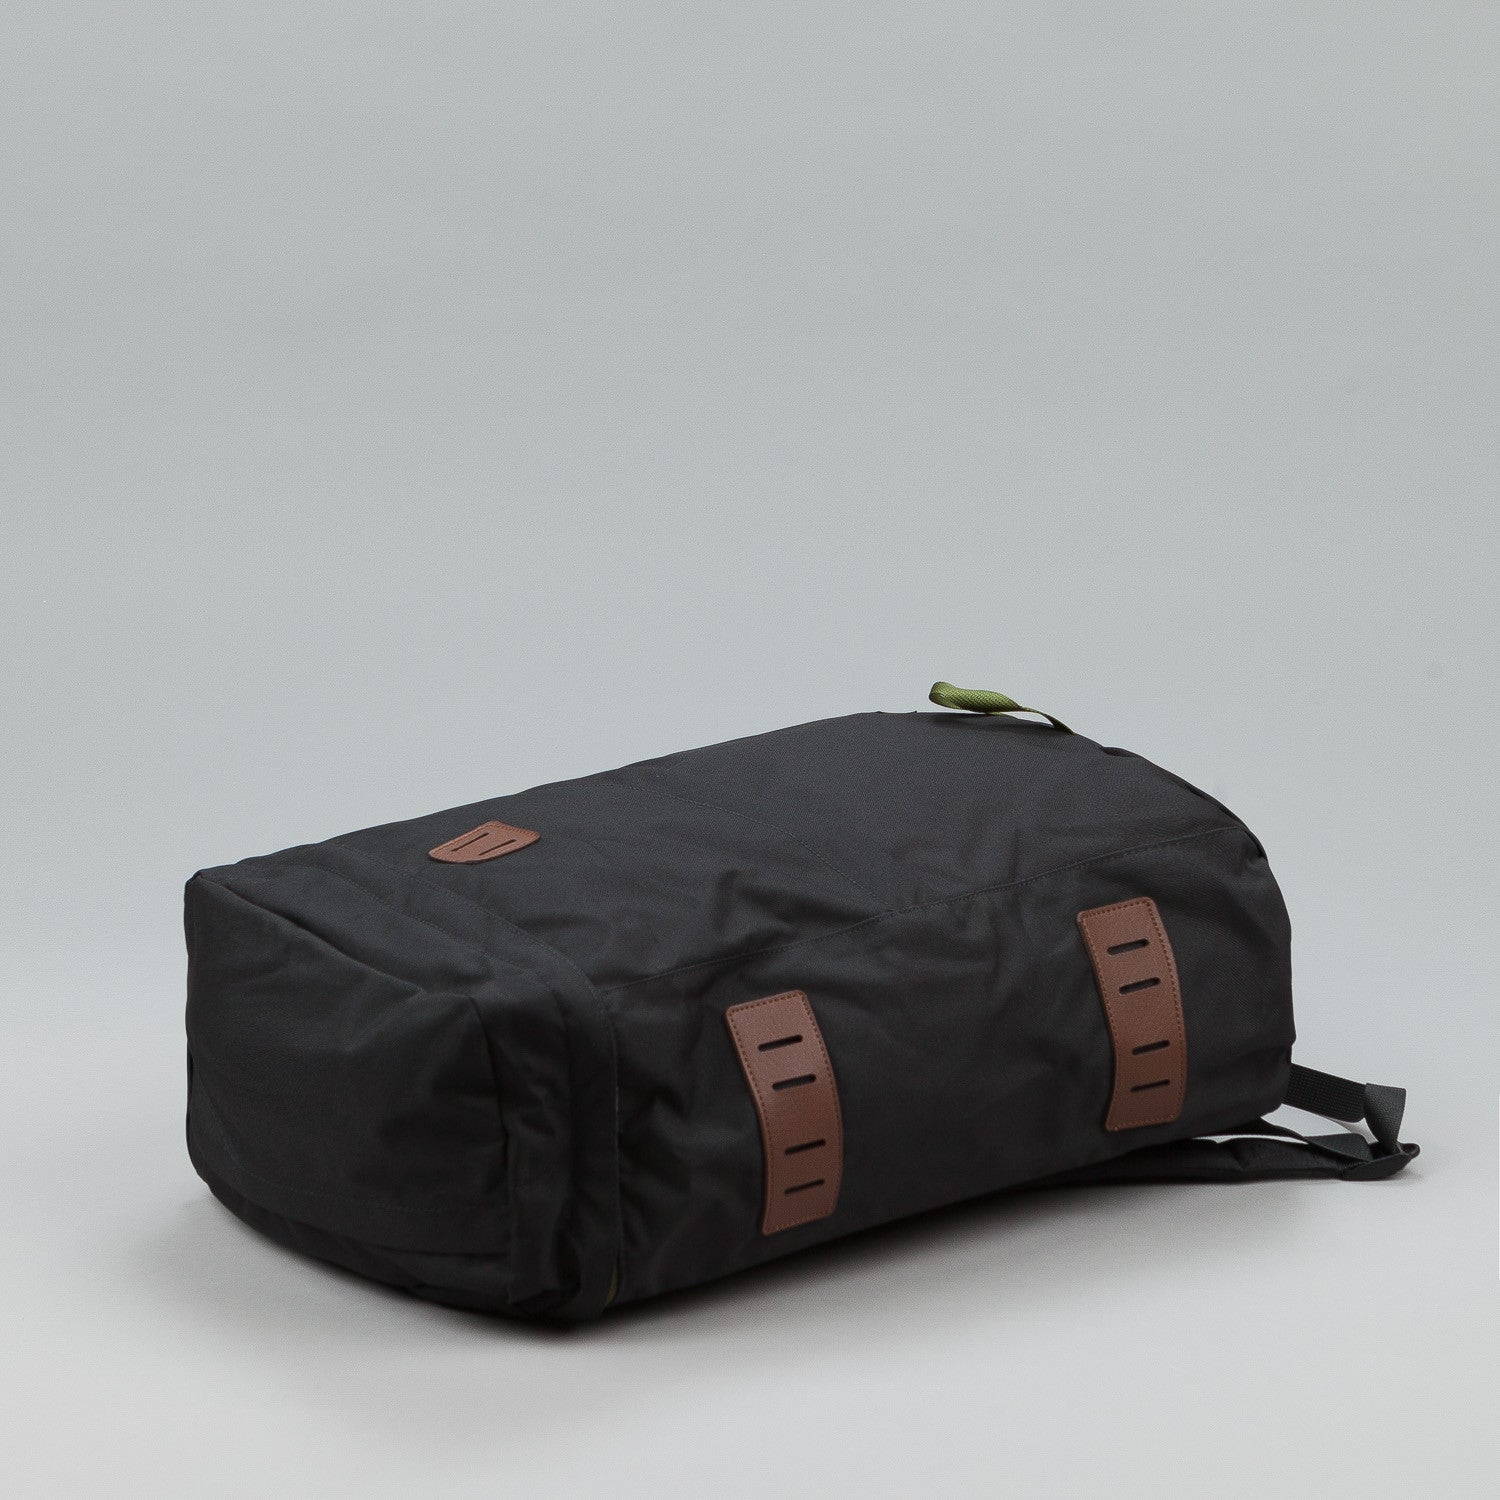 Patagonia Toromiro Backpack - Rockwall